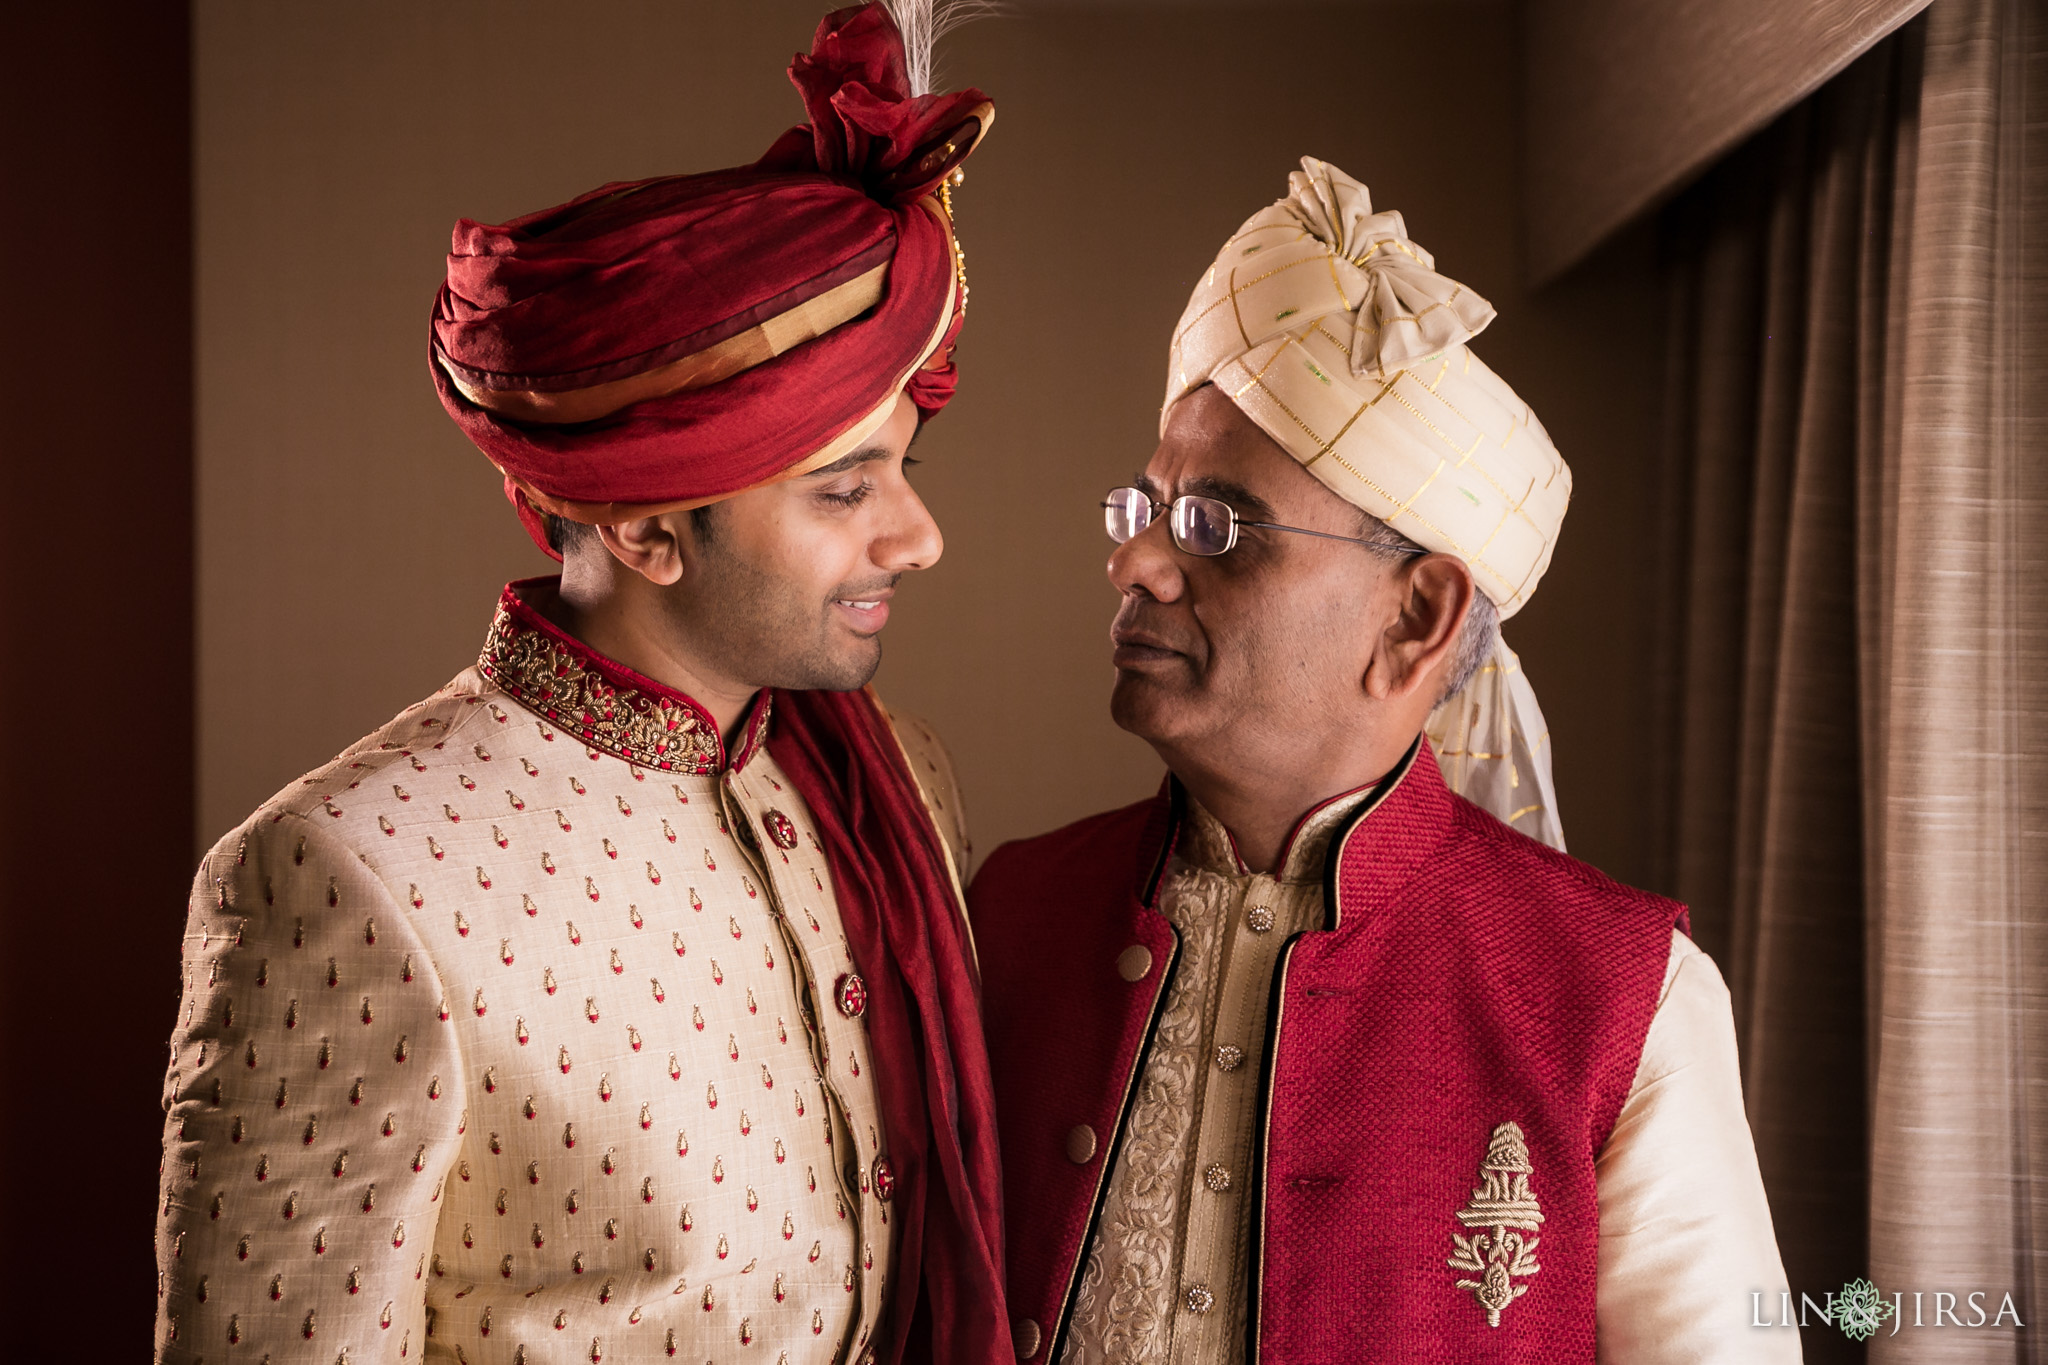 14 hotel irvine indian groom wedding photography